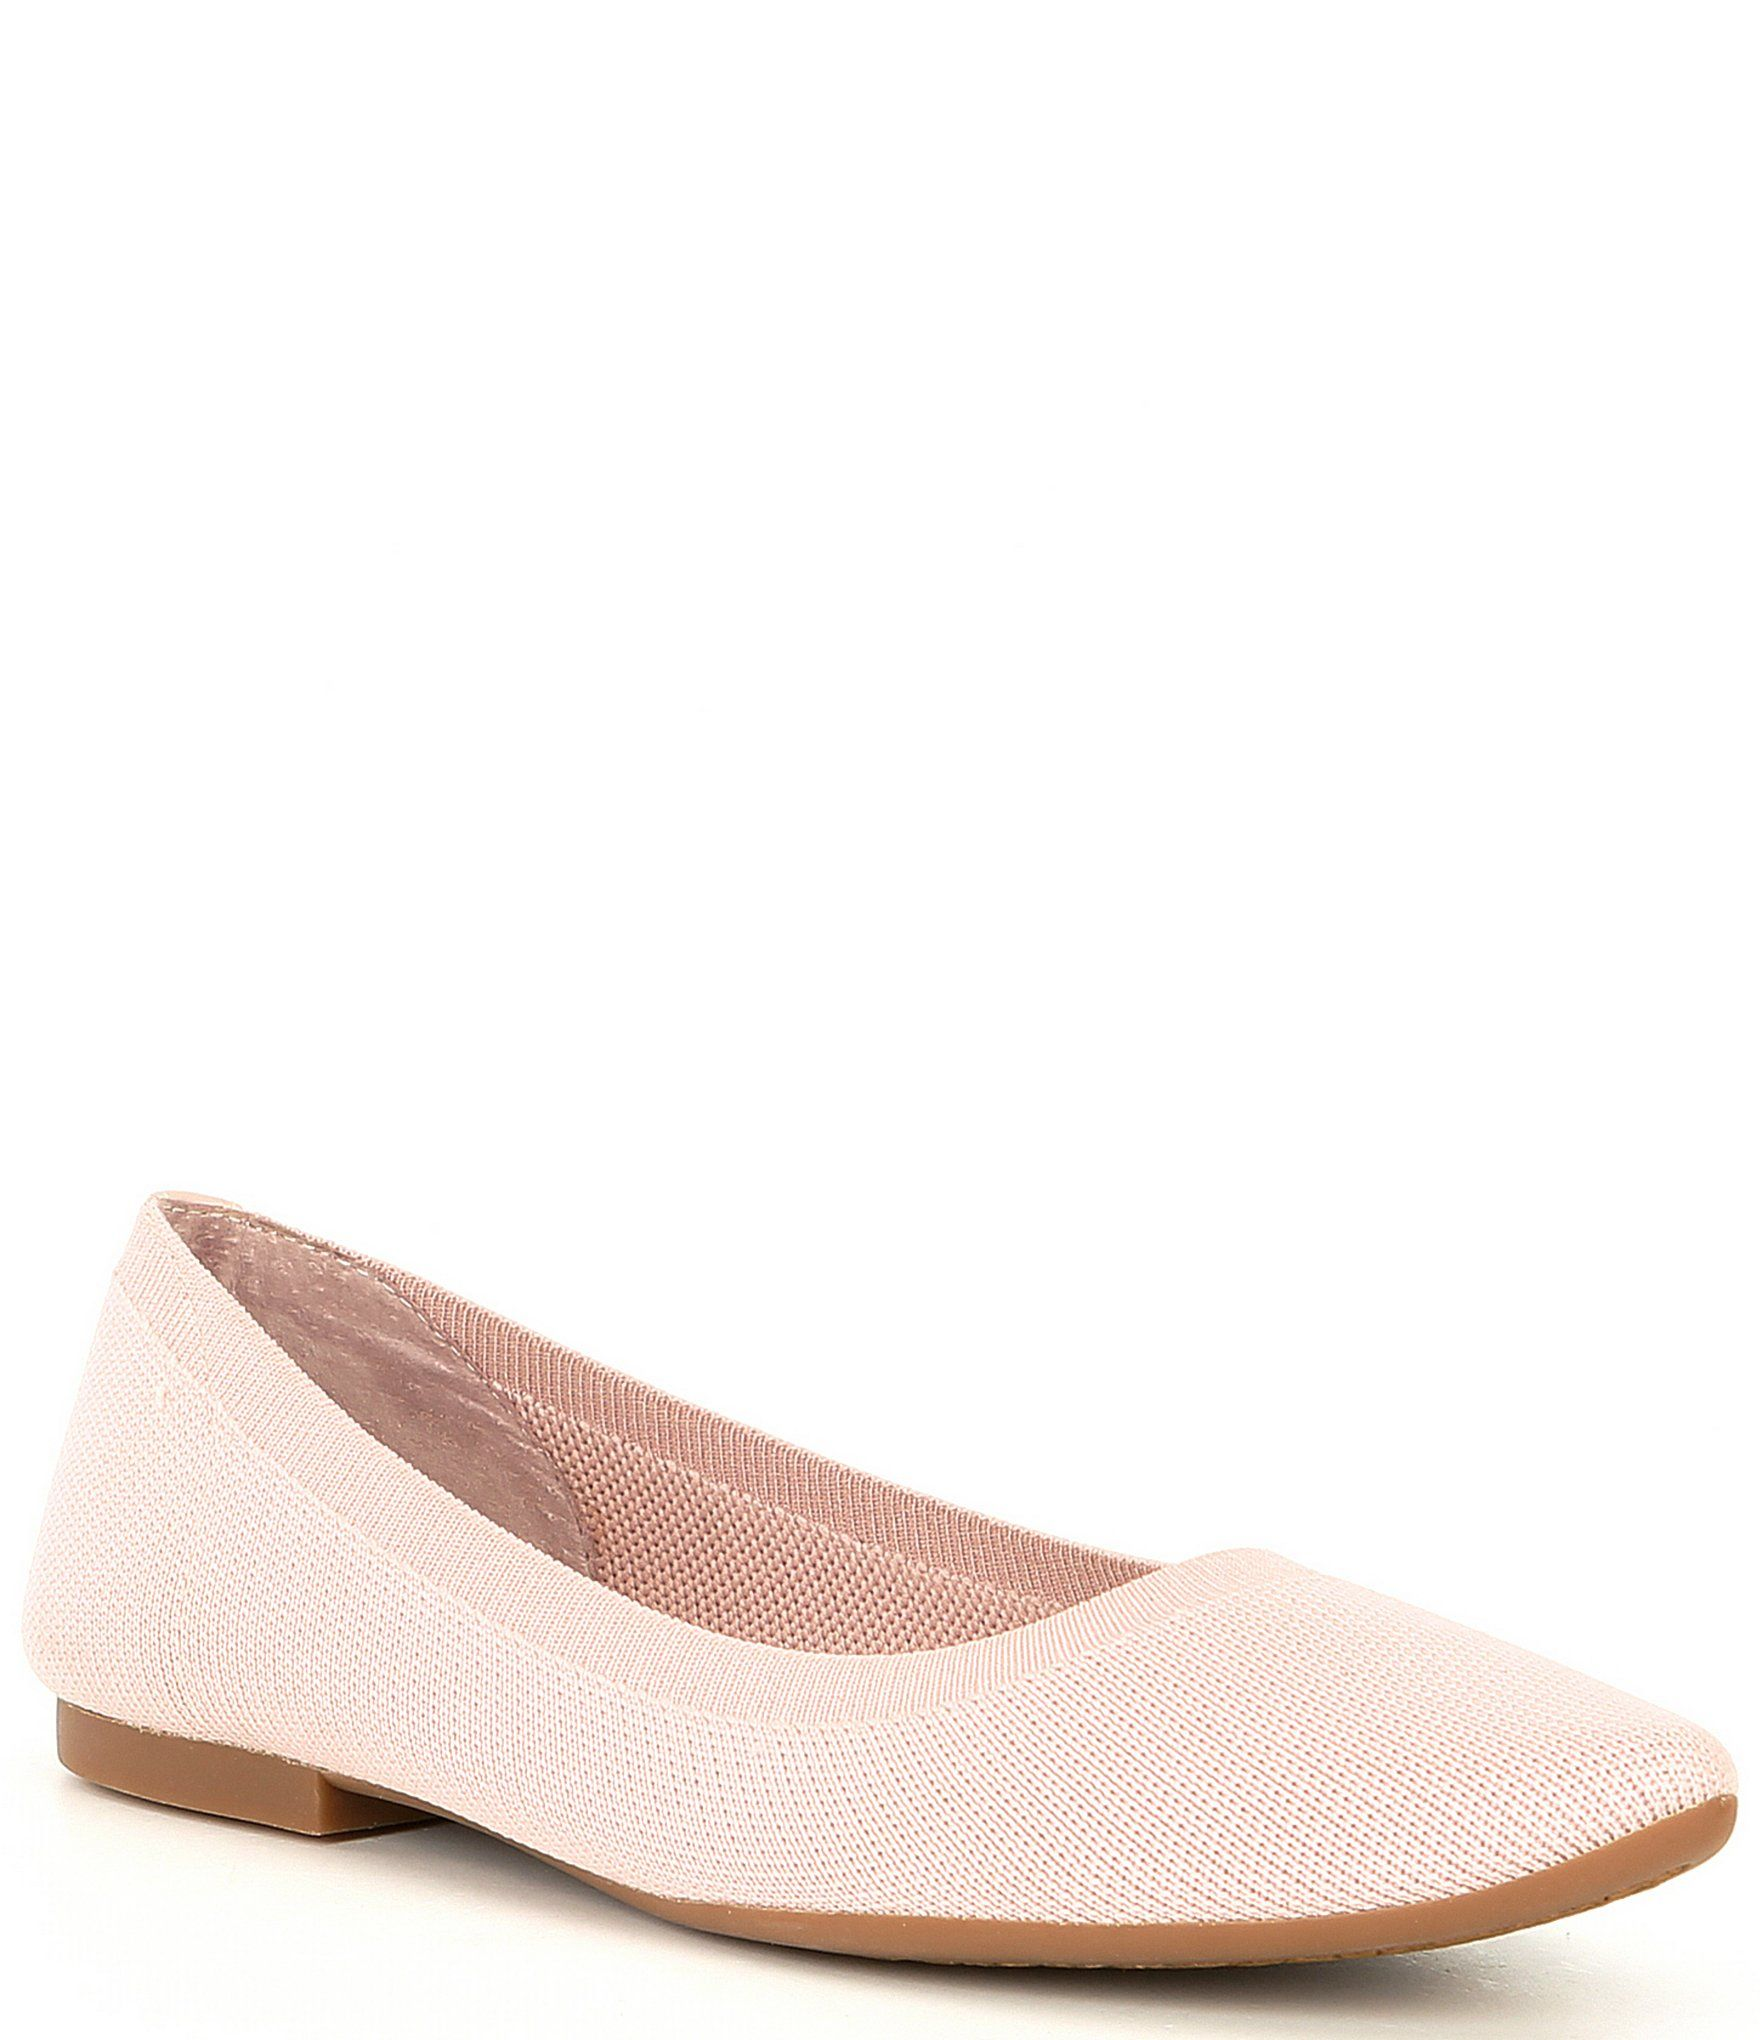 Shop for Gianni Bini Semine Stretch Knit Pointed Toe Flats at Dillard's. Visit Dillard's to find clothing, accessories, shoes, cosmetics & more. The Style of Your Life.